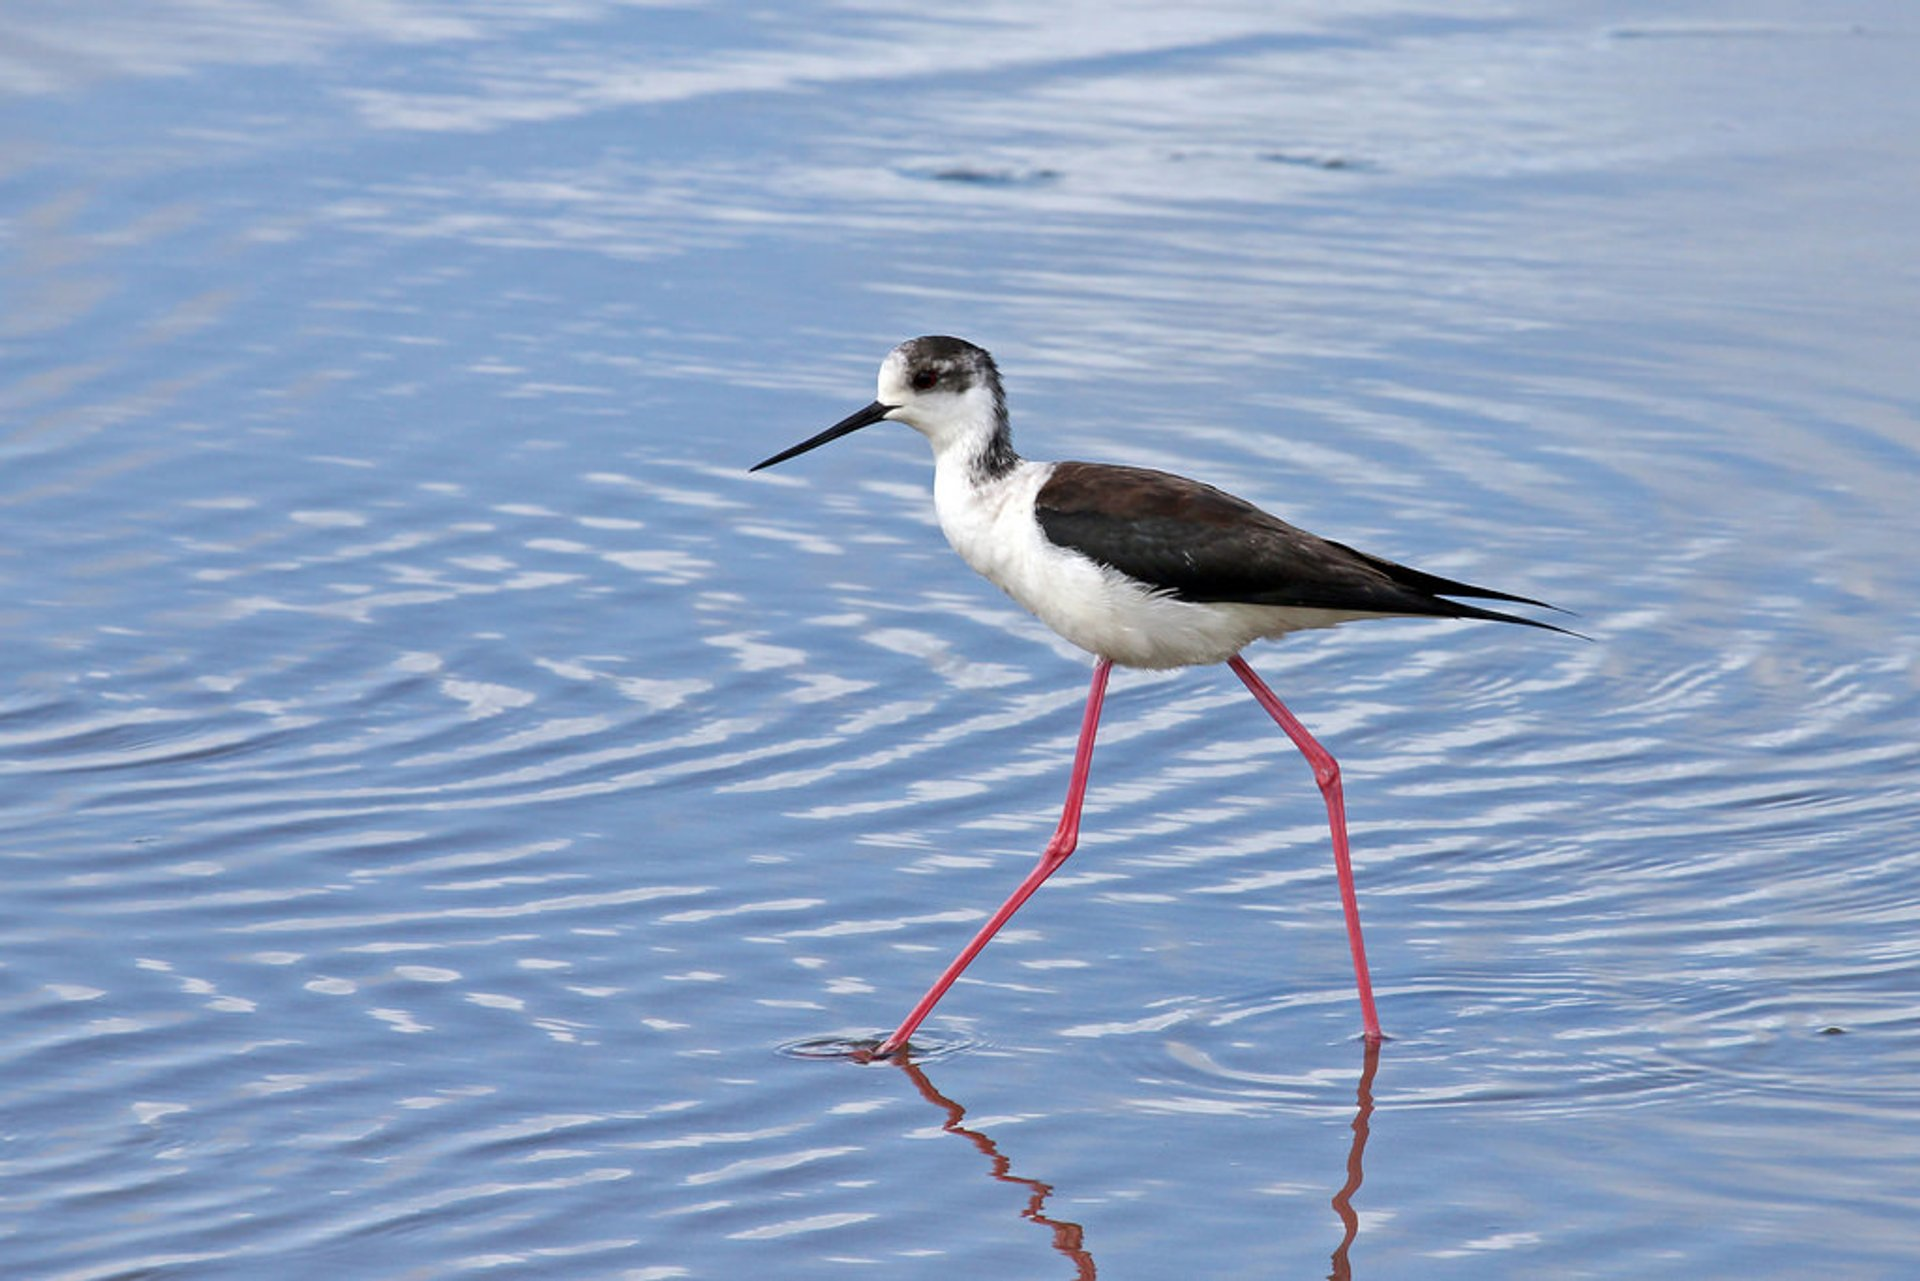 Black-winged Stilt in Sado Estuary 2020